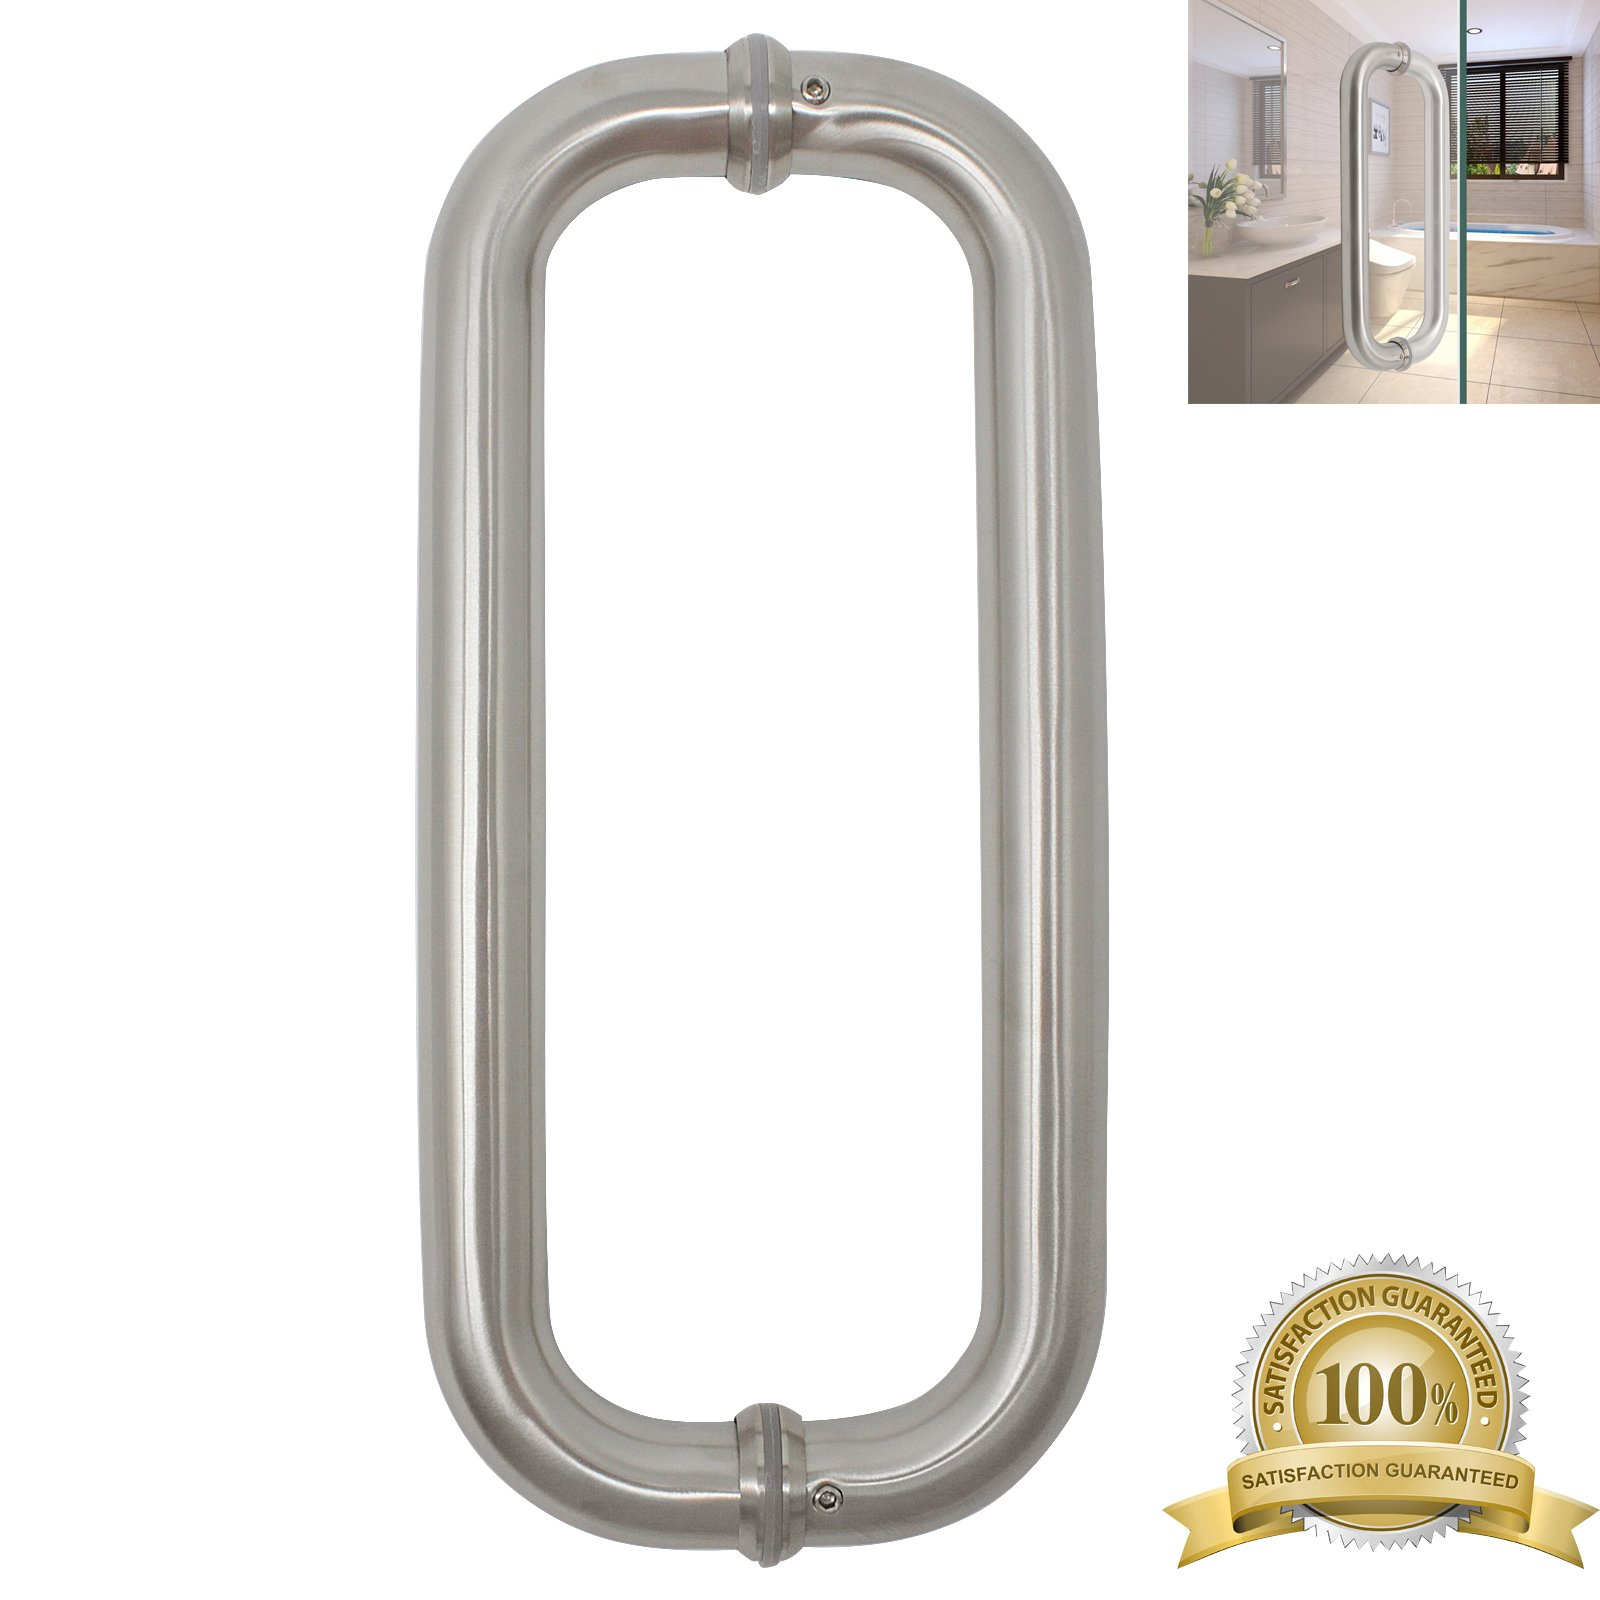 Stainless Steel Heavy Duty Bar to Bar Pipe Flush Door Pulls 12'' Total Length 11.2inch Hole Centers Barn Door Handle Pairs